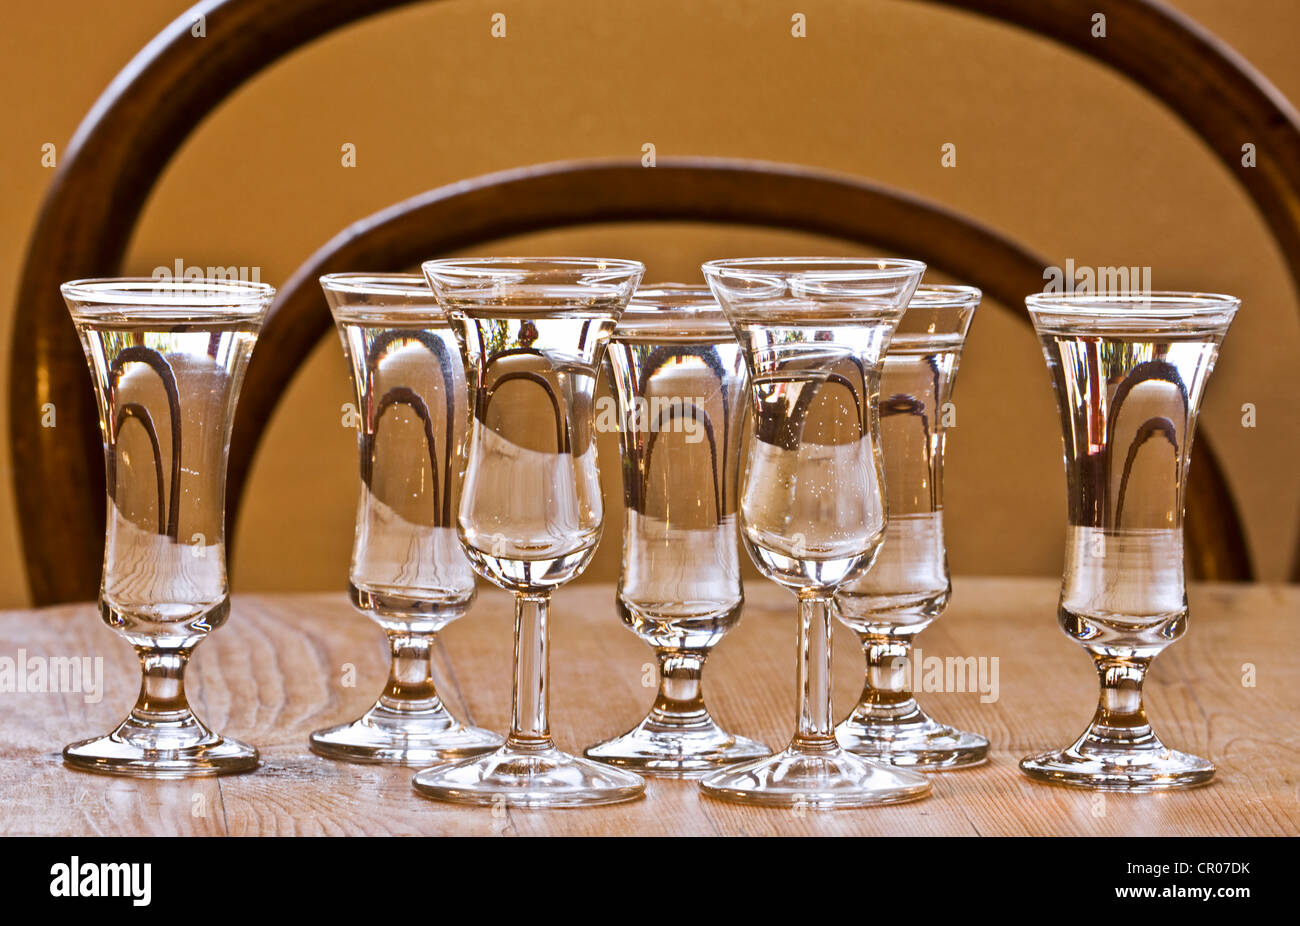 Drinking Glasses On Table Filled With Dutch Gin Jenever